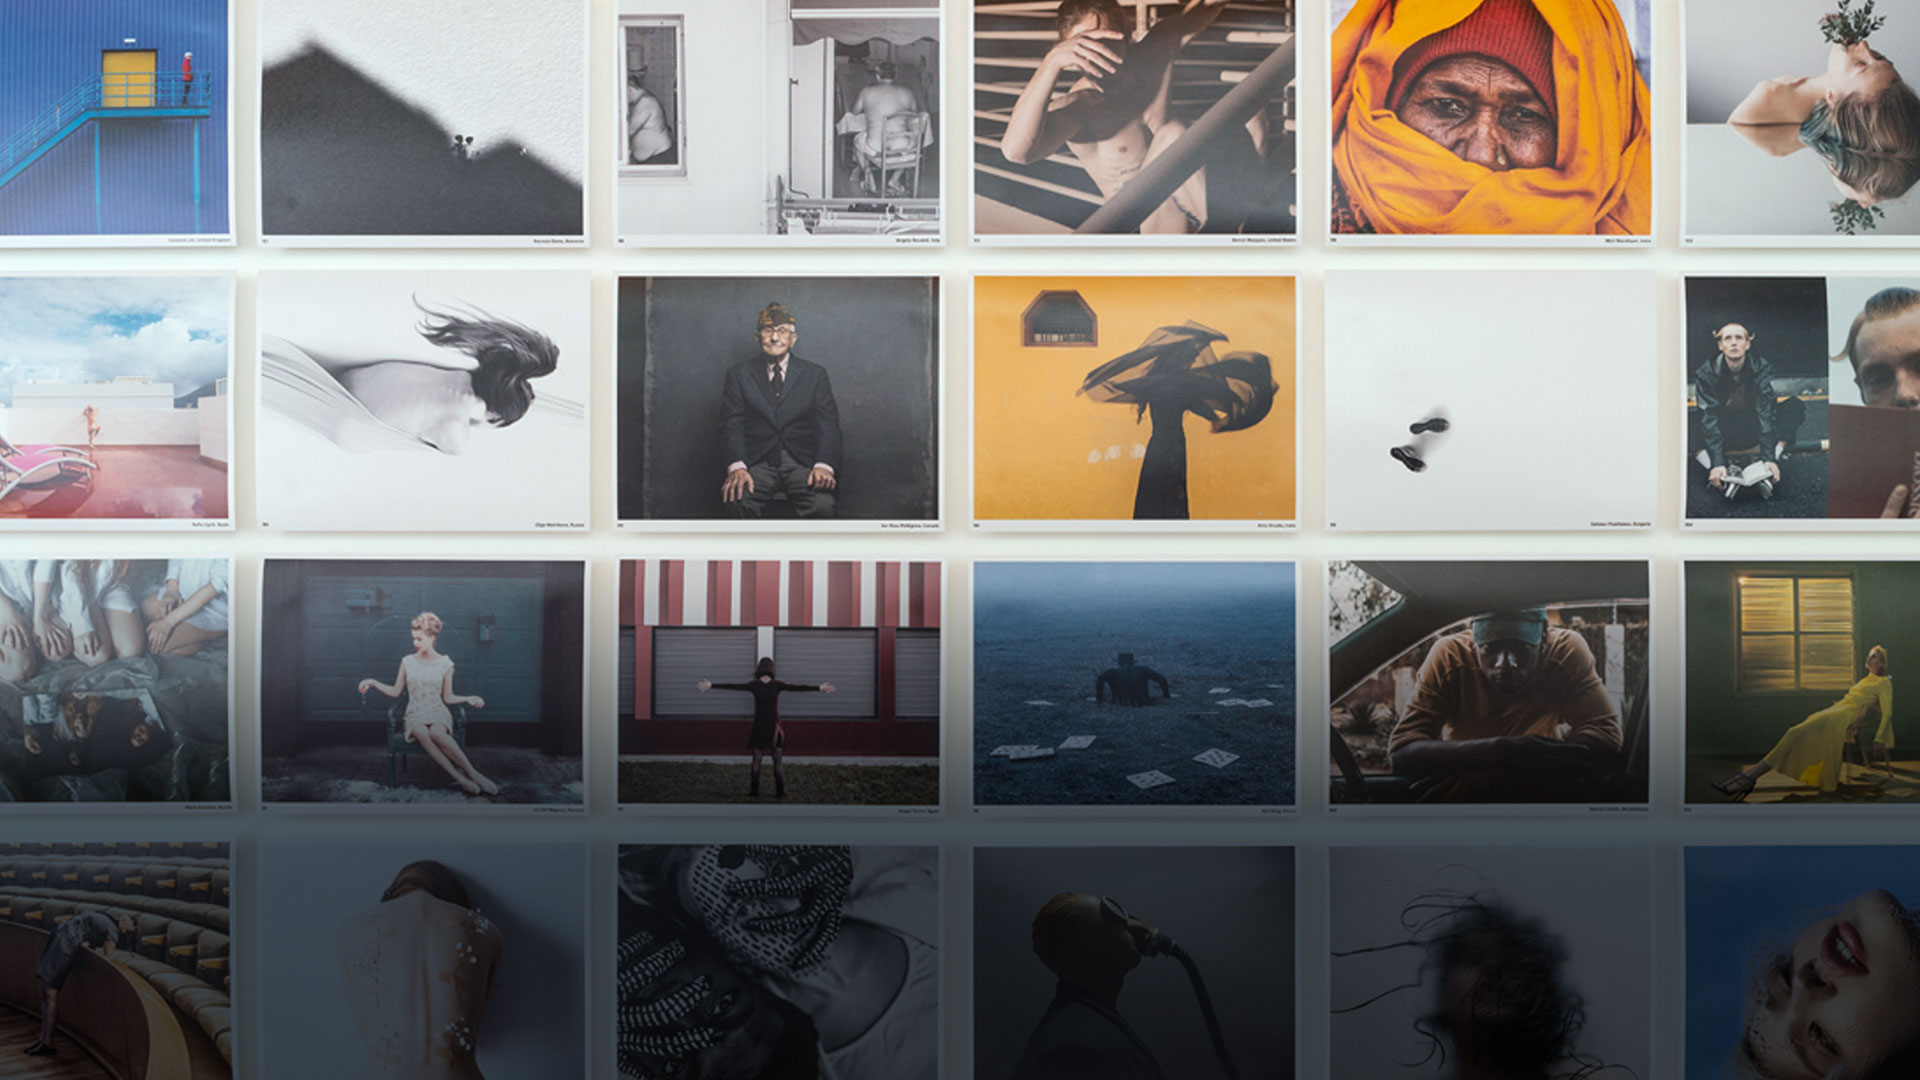 Exhibit Your Work in the 500px